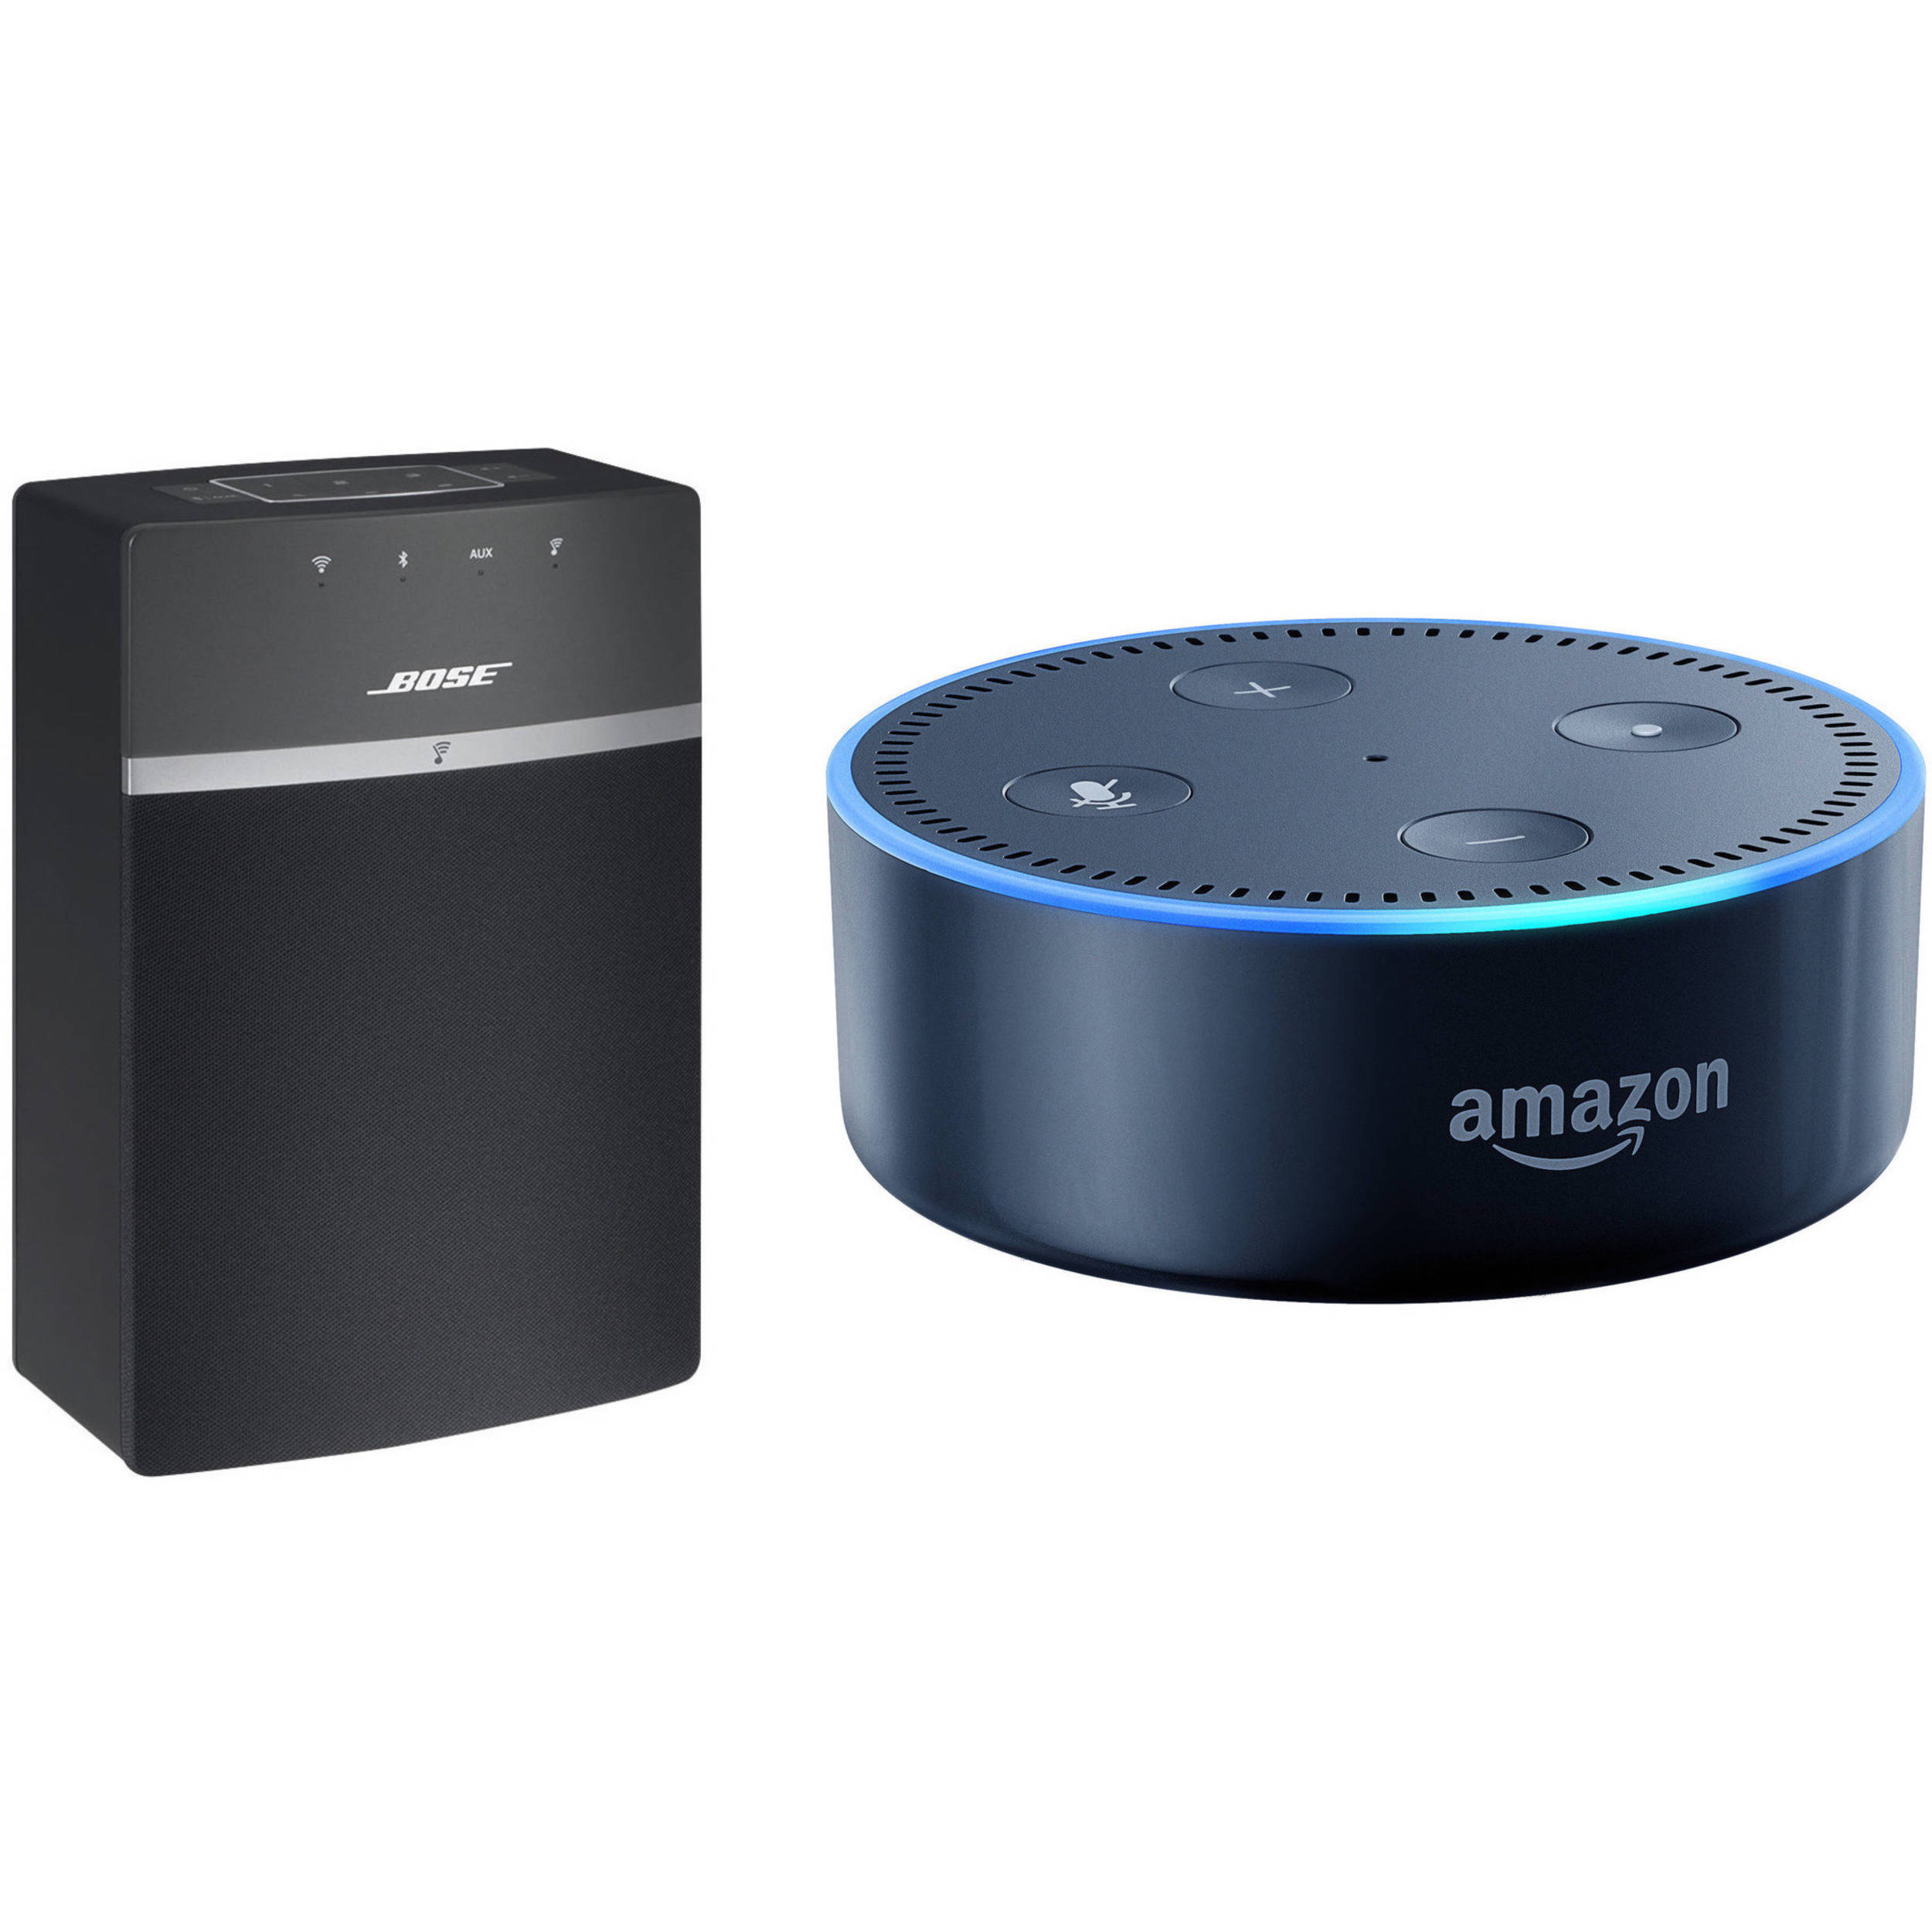 bose soundtouch 10 wireless music system and amazon echo. Black Bedroom Furniture Sets. Home Design Ideas